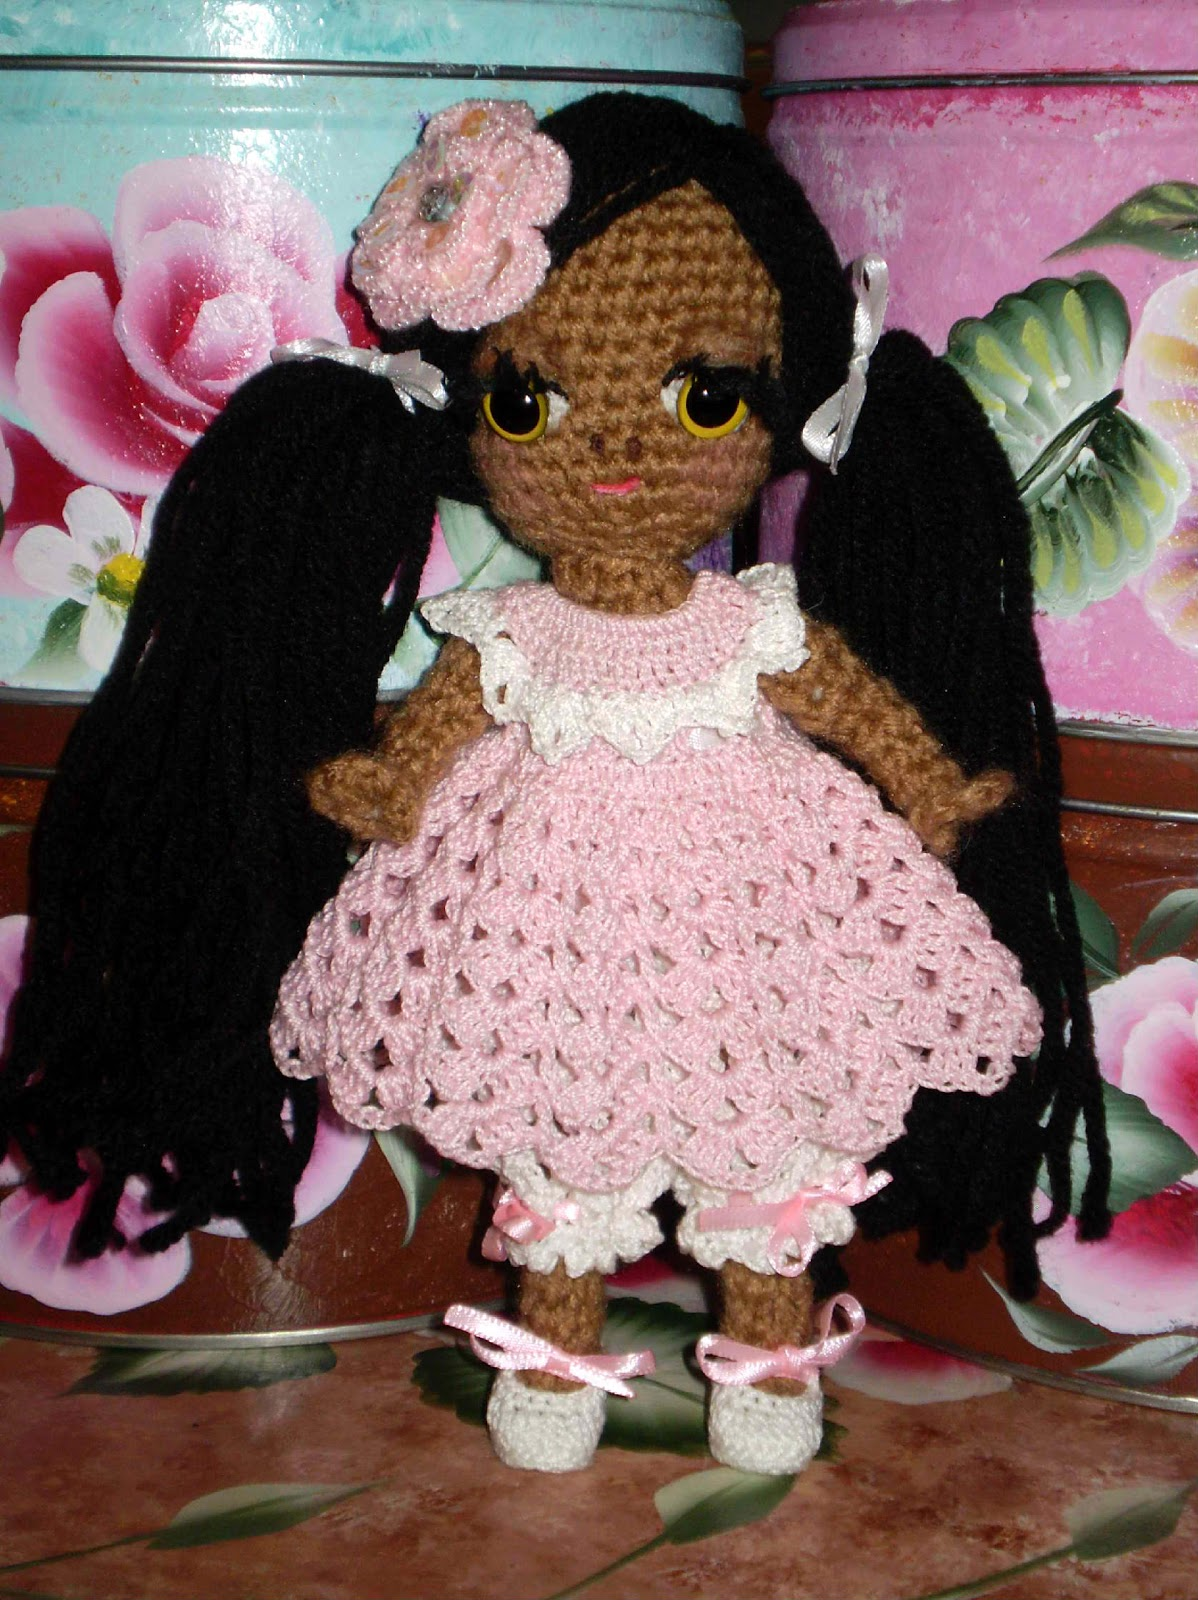 Crochet Patterns for Dolls - BuggsBooks.com